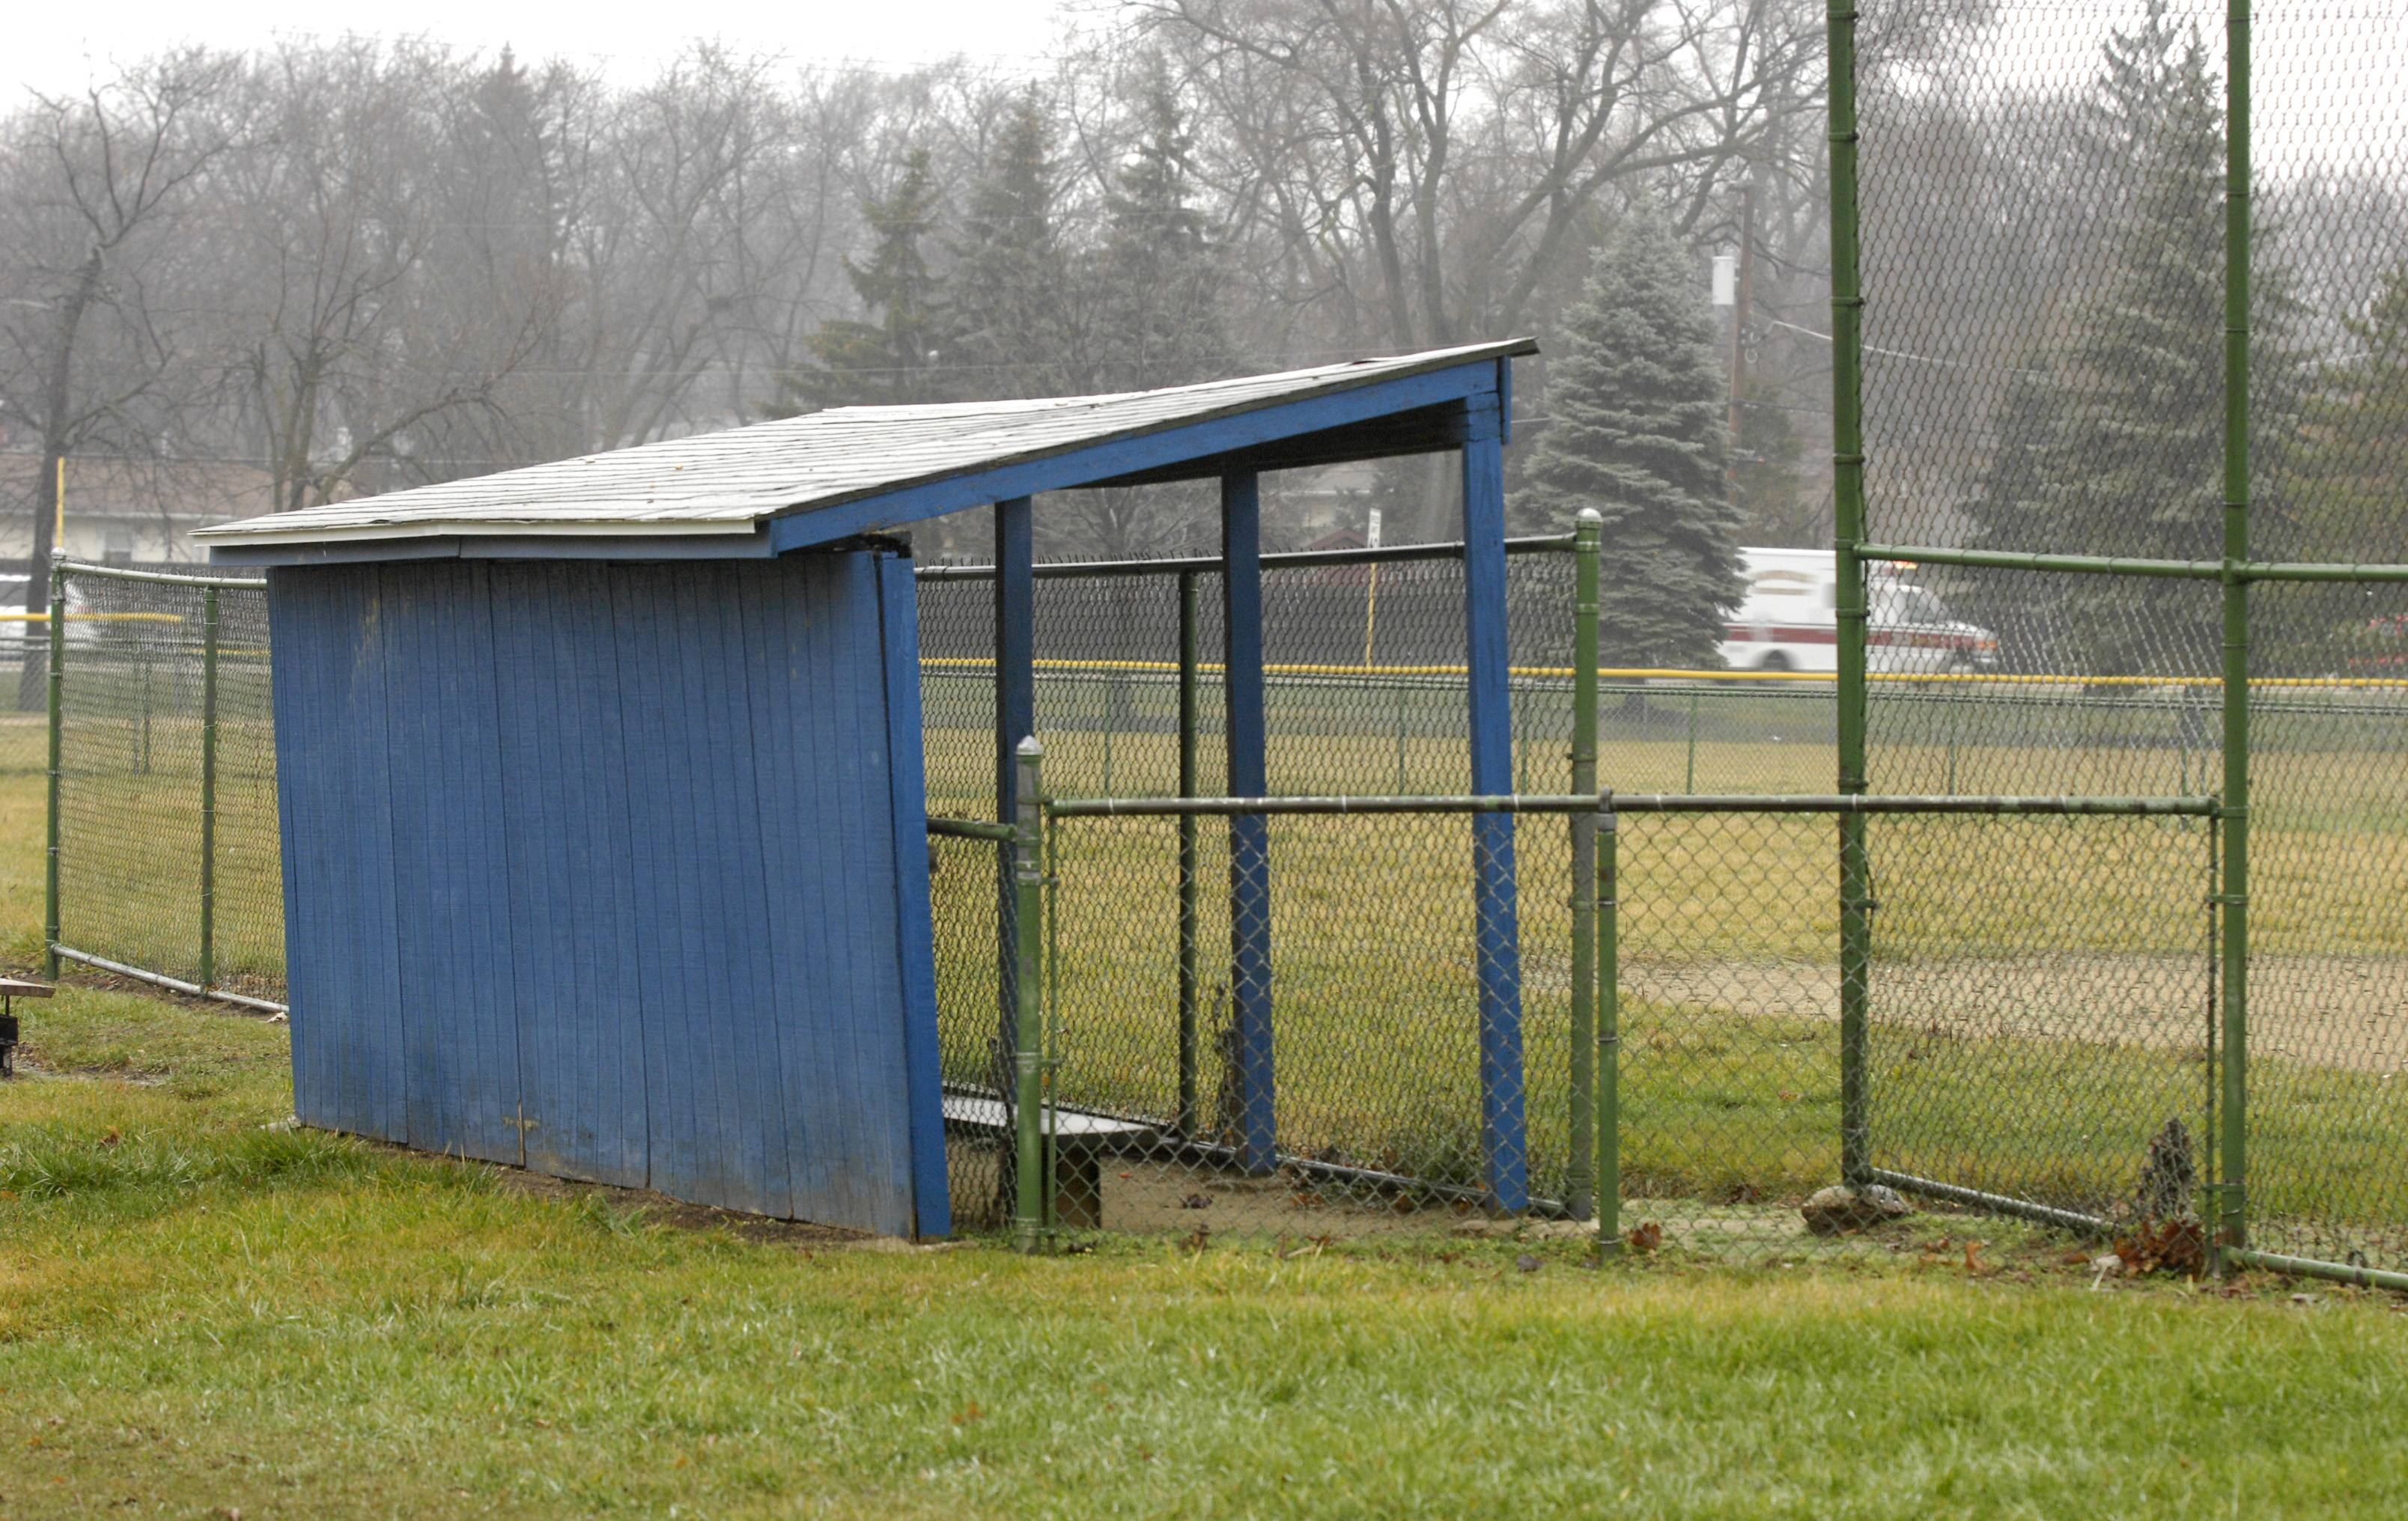 Hanover Park's MWRD Sports Complex could be getting new dugouts and fences by the end of the year if the Hanover Park Little League and Hurricanes football team can round up enough volunteers to help with the project. Without volunteers, officials say, they'll have to pay the prevailing wage to get the work done, likely leaving only enough money for new fences.